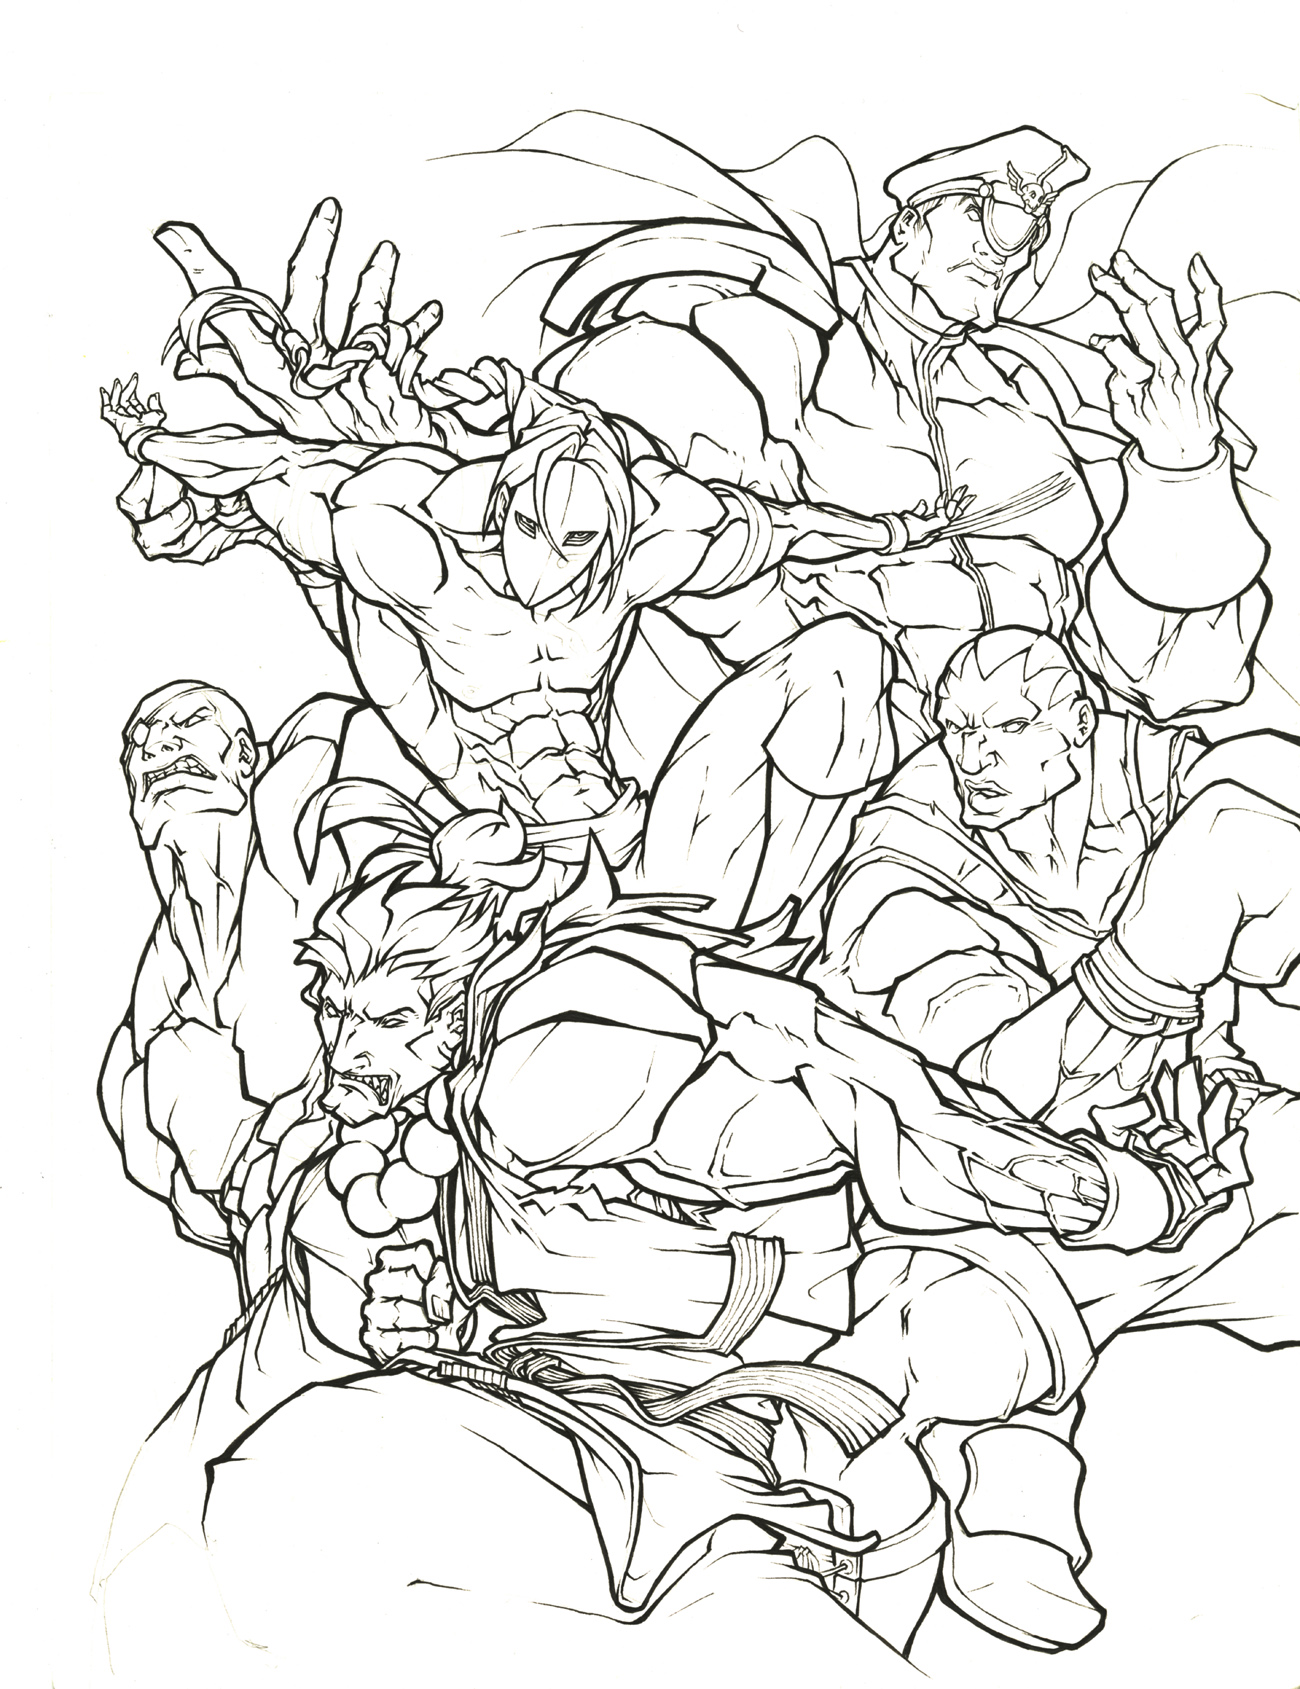 street fighter coloring pages - photo#11